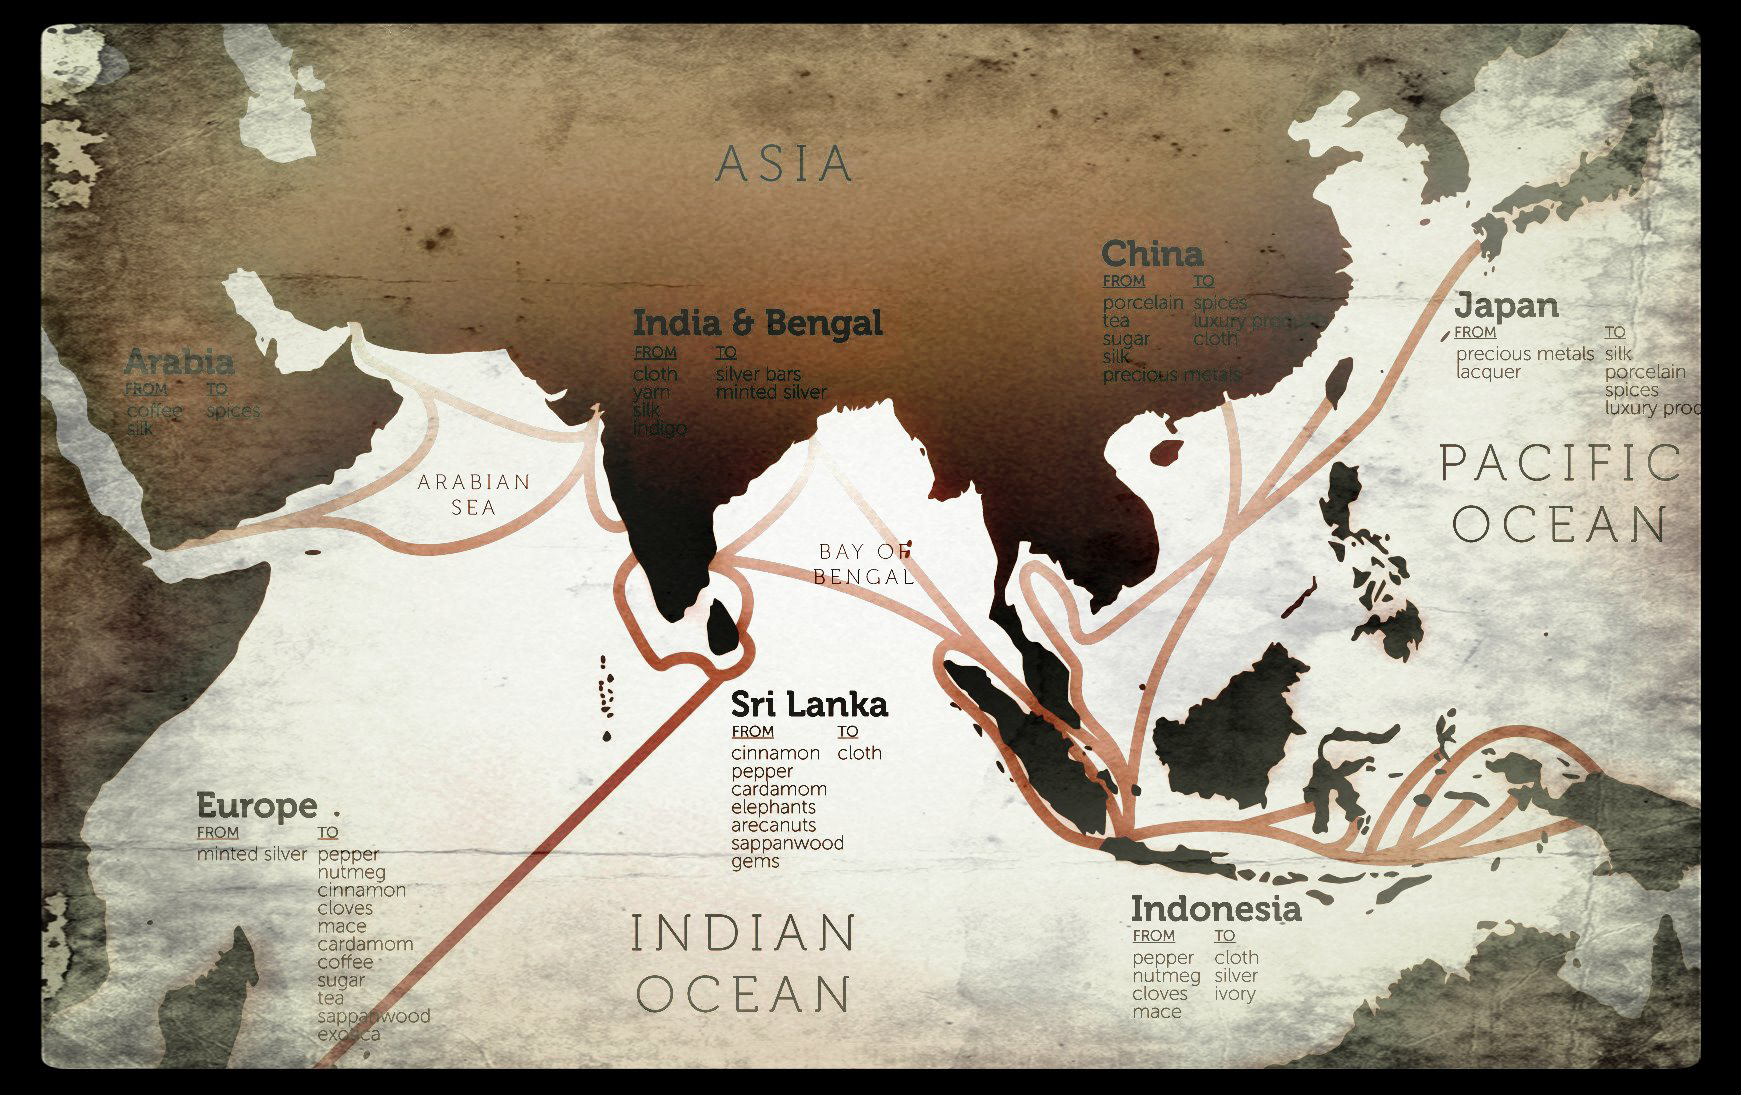 Eric olason mapmaker cartographic artist asian trade routes in single map created for a private military analyst based in sydney australia to be used for inclusion with written works and presentations gumiabroncs Images